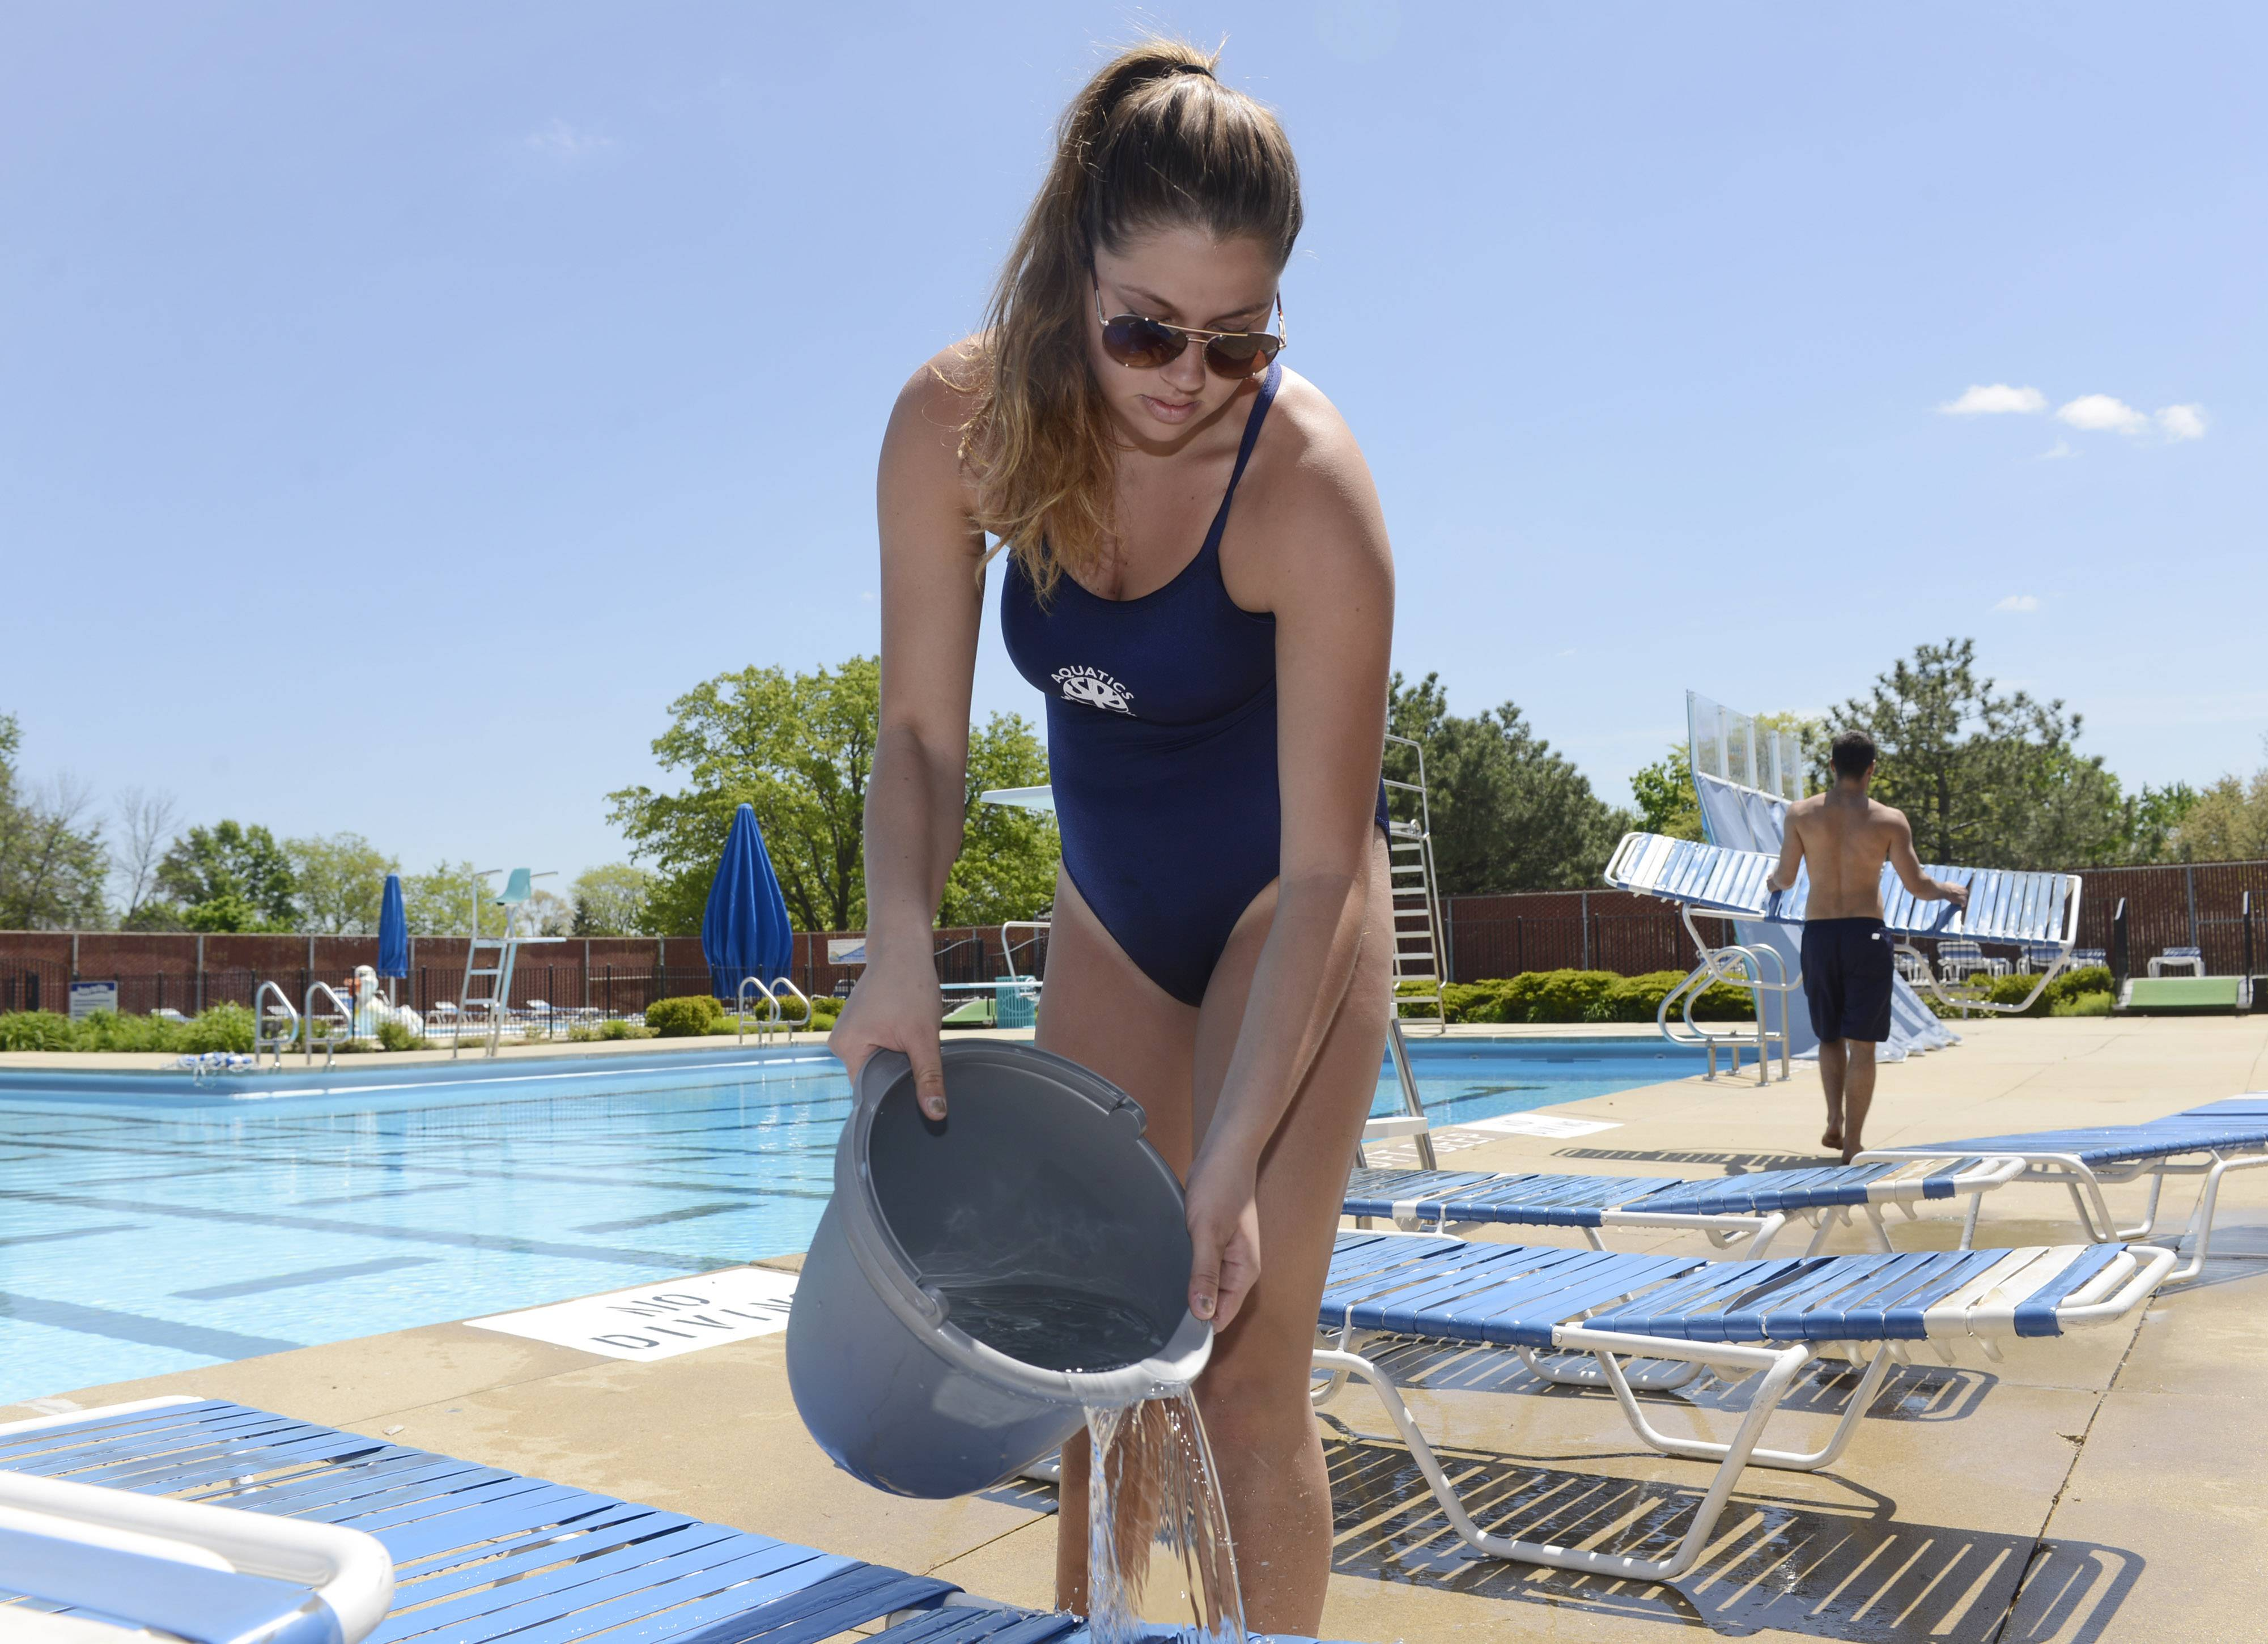 Lifeguard Ema Cigerova helps clean chairs Friday afternoon in preparation for Saturday's opening of the Schaumburg Park District's Bock Neighborhood Center and Park pool Friday.